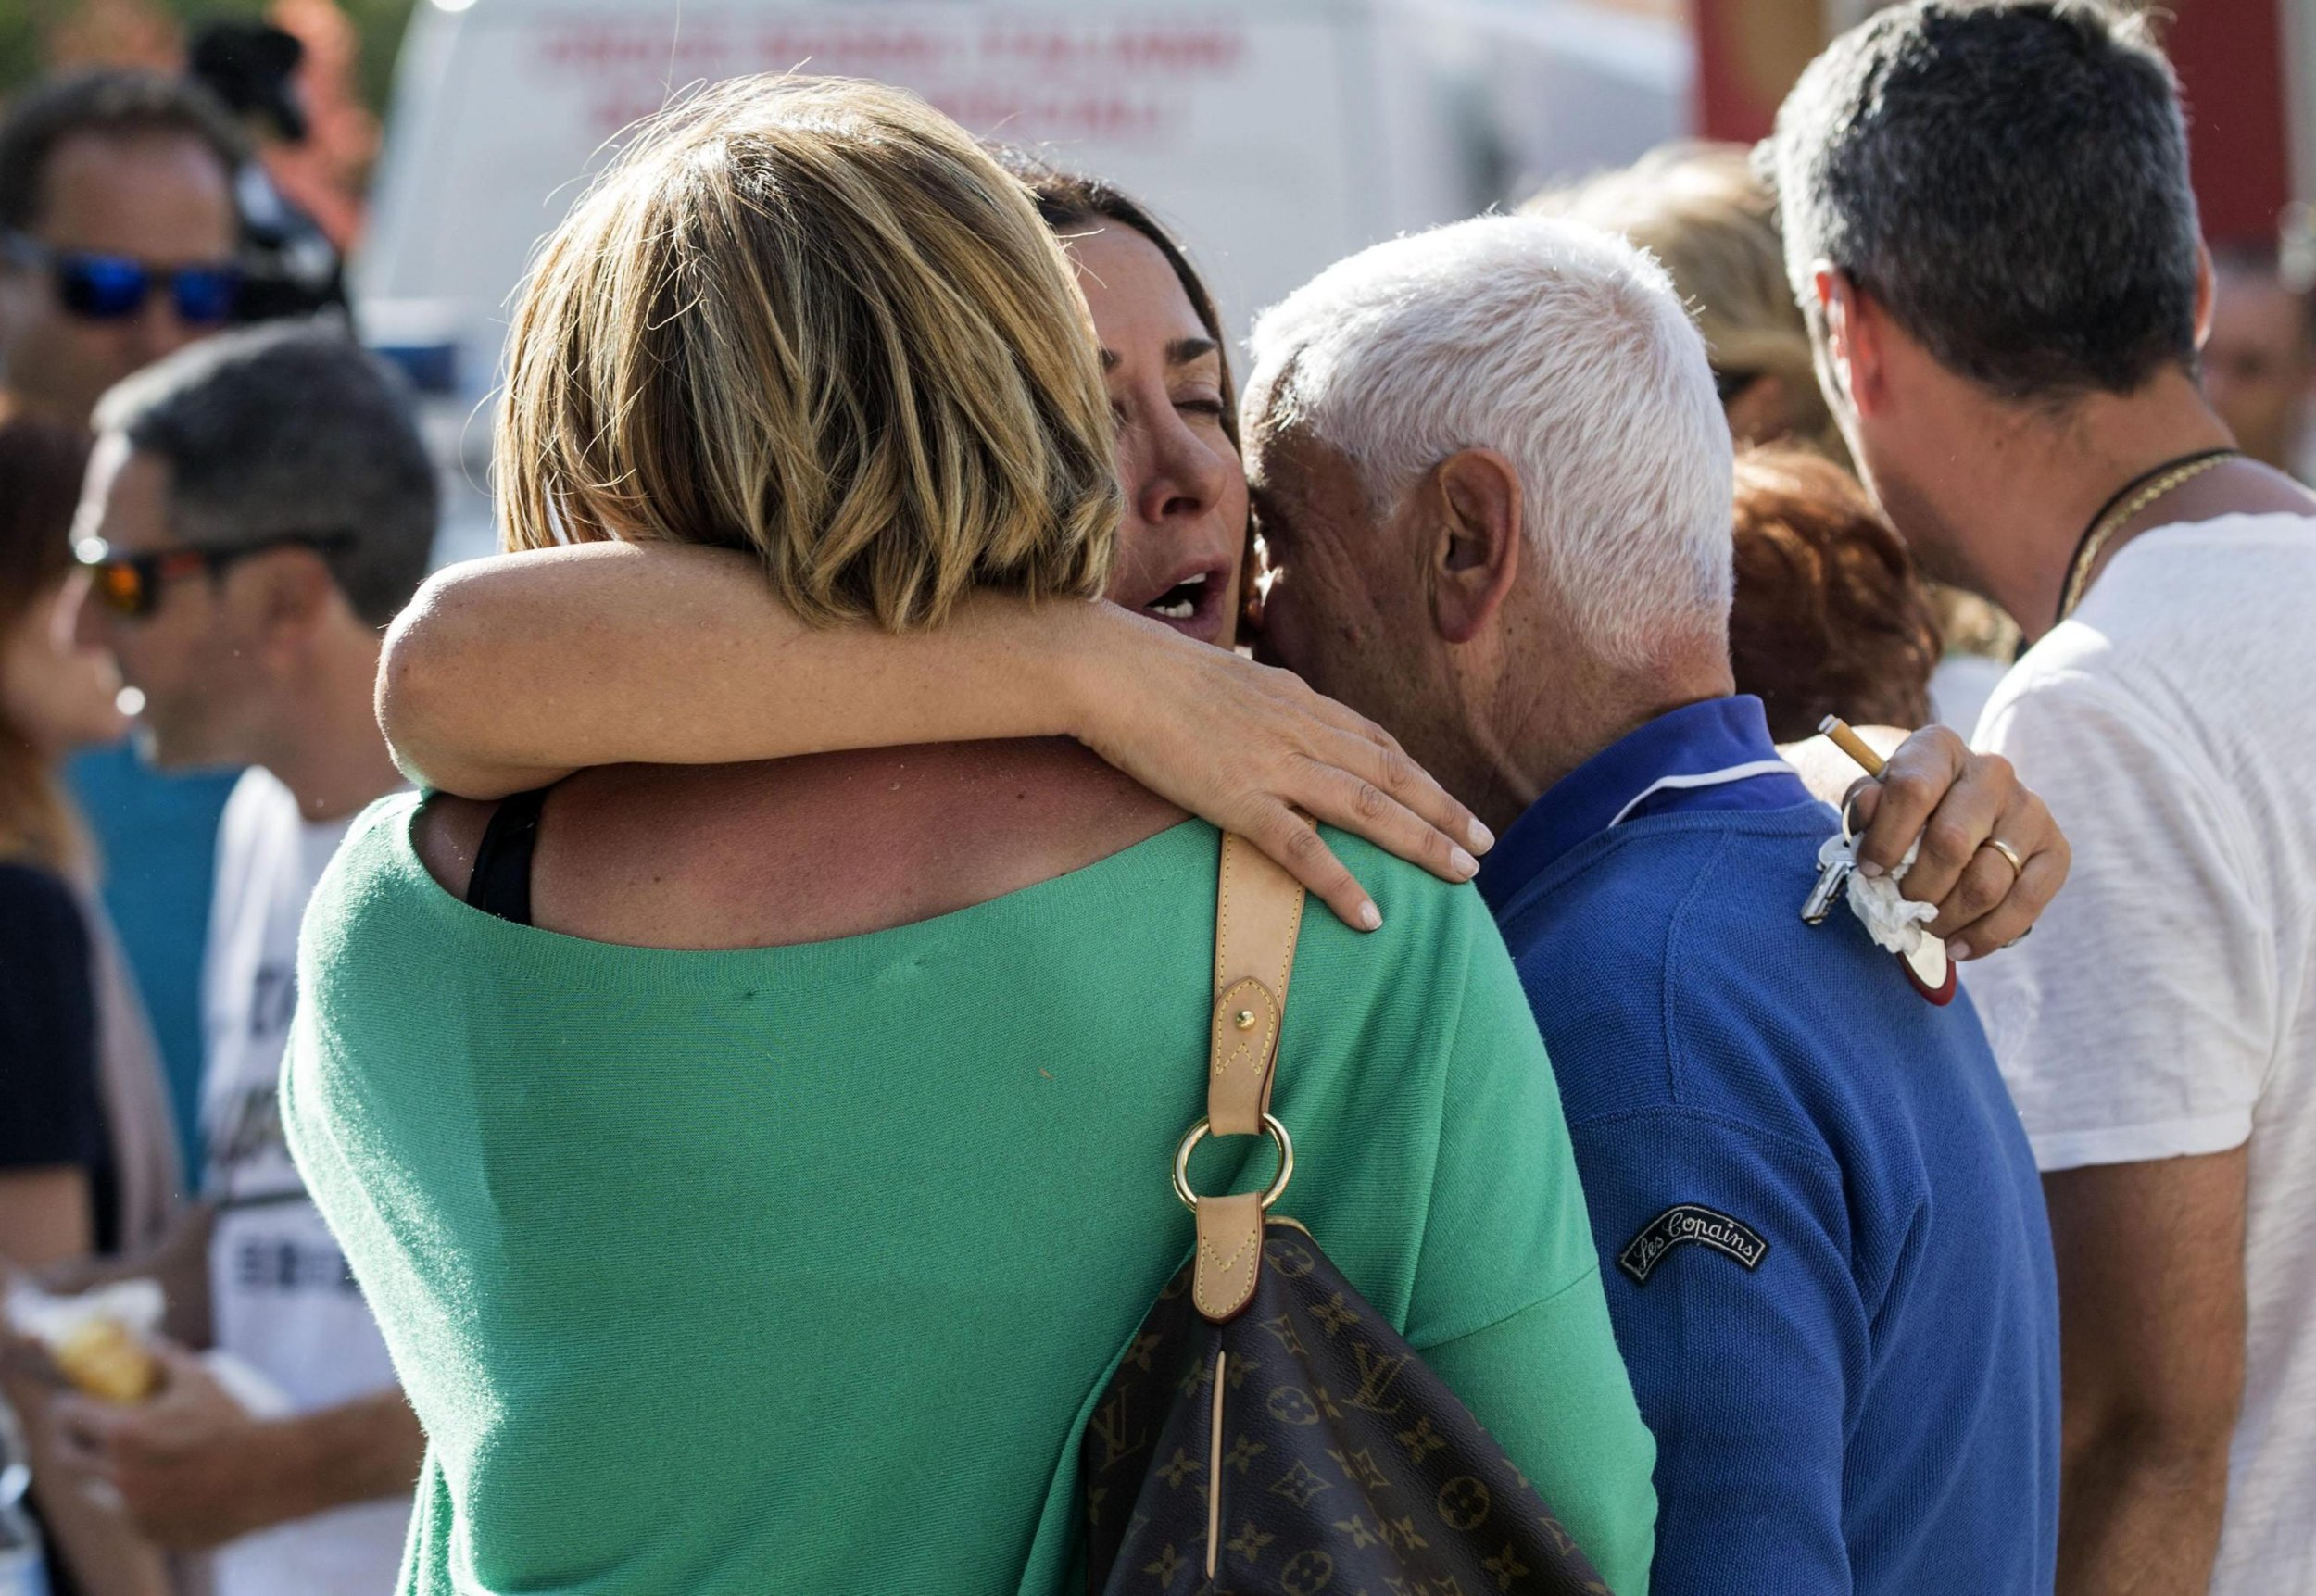 epa05508908 Survivors cry in Amatrice, central Italy, where a 6.1 earthquake struck just after 3:30 a.m., Italy, 24 August 2016. The quake was felt across a broad section of central Italy, in Umbria, Lazio and Marche Regions, including the capital Rome where people in homes in the historic center felt a long swaying followed by aftershocks. According to reports more than 100 people died in the quake. EPA/MASSIMO PERCOSSI